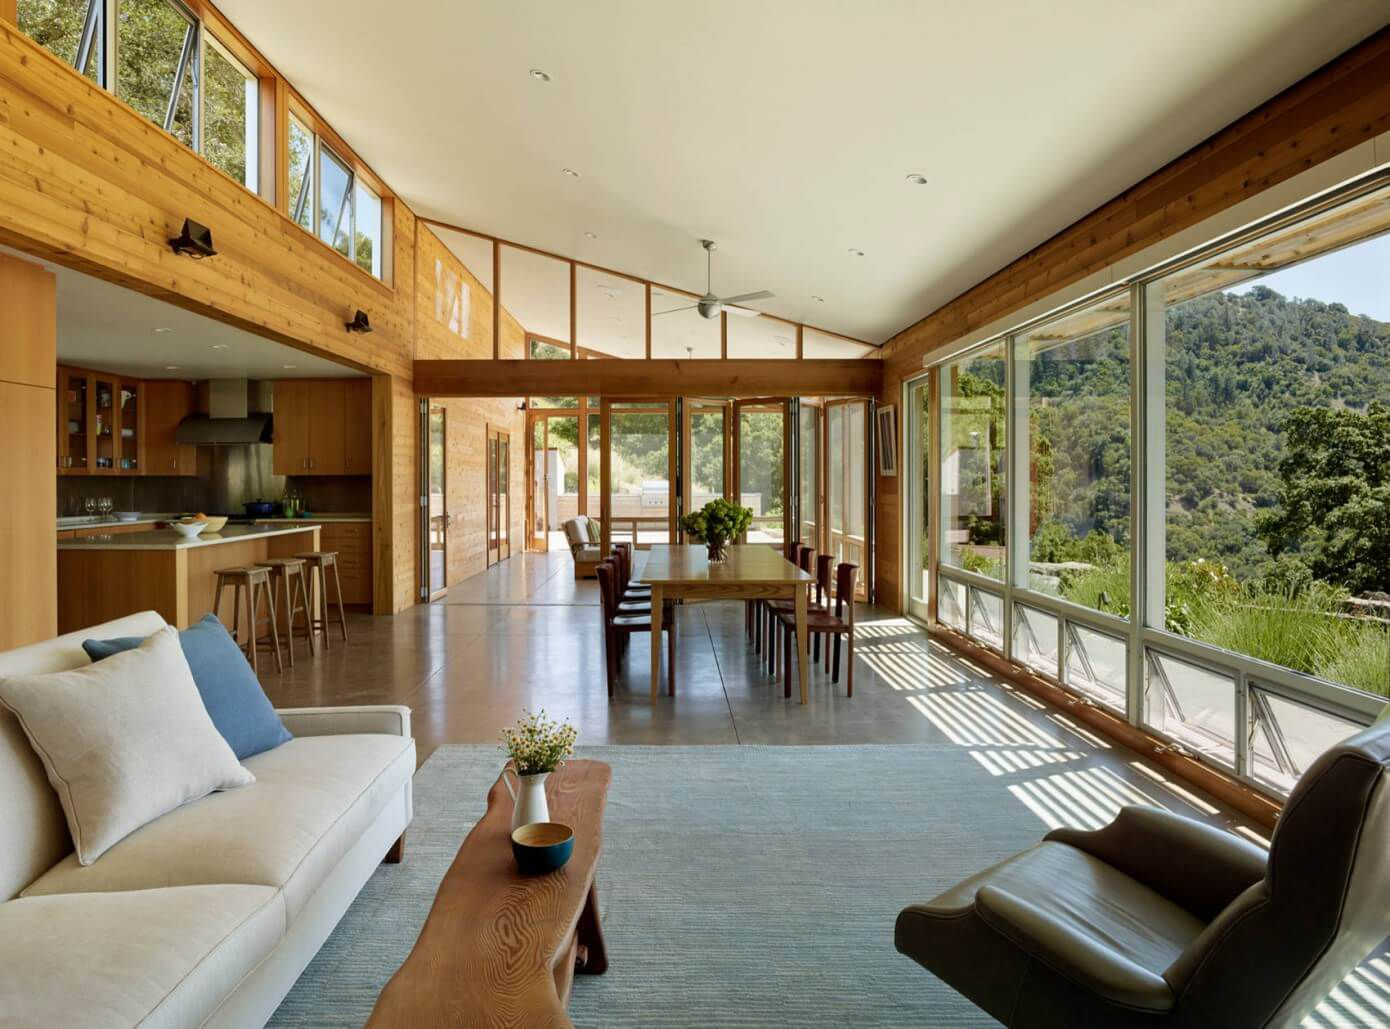 open living room with wooden interior deisgn and striking view